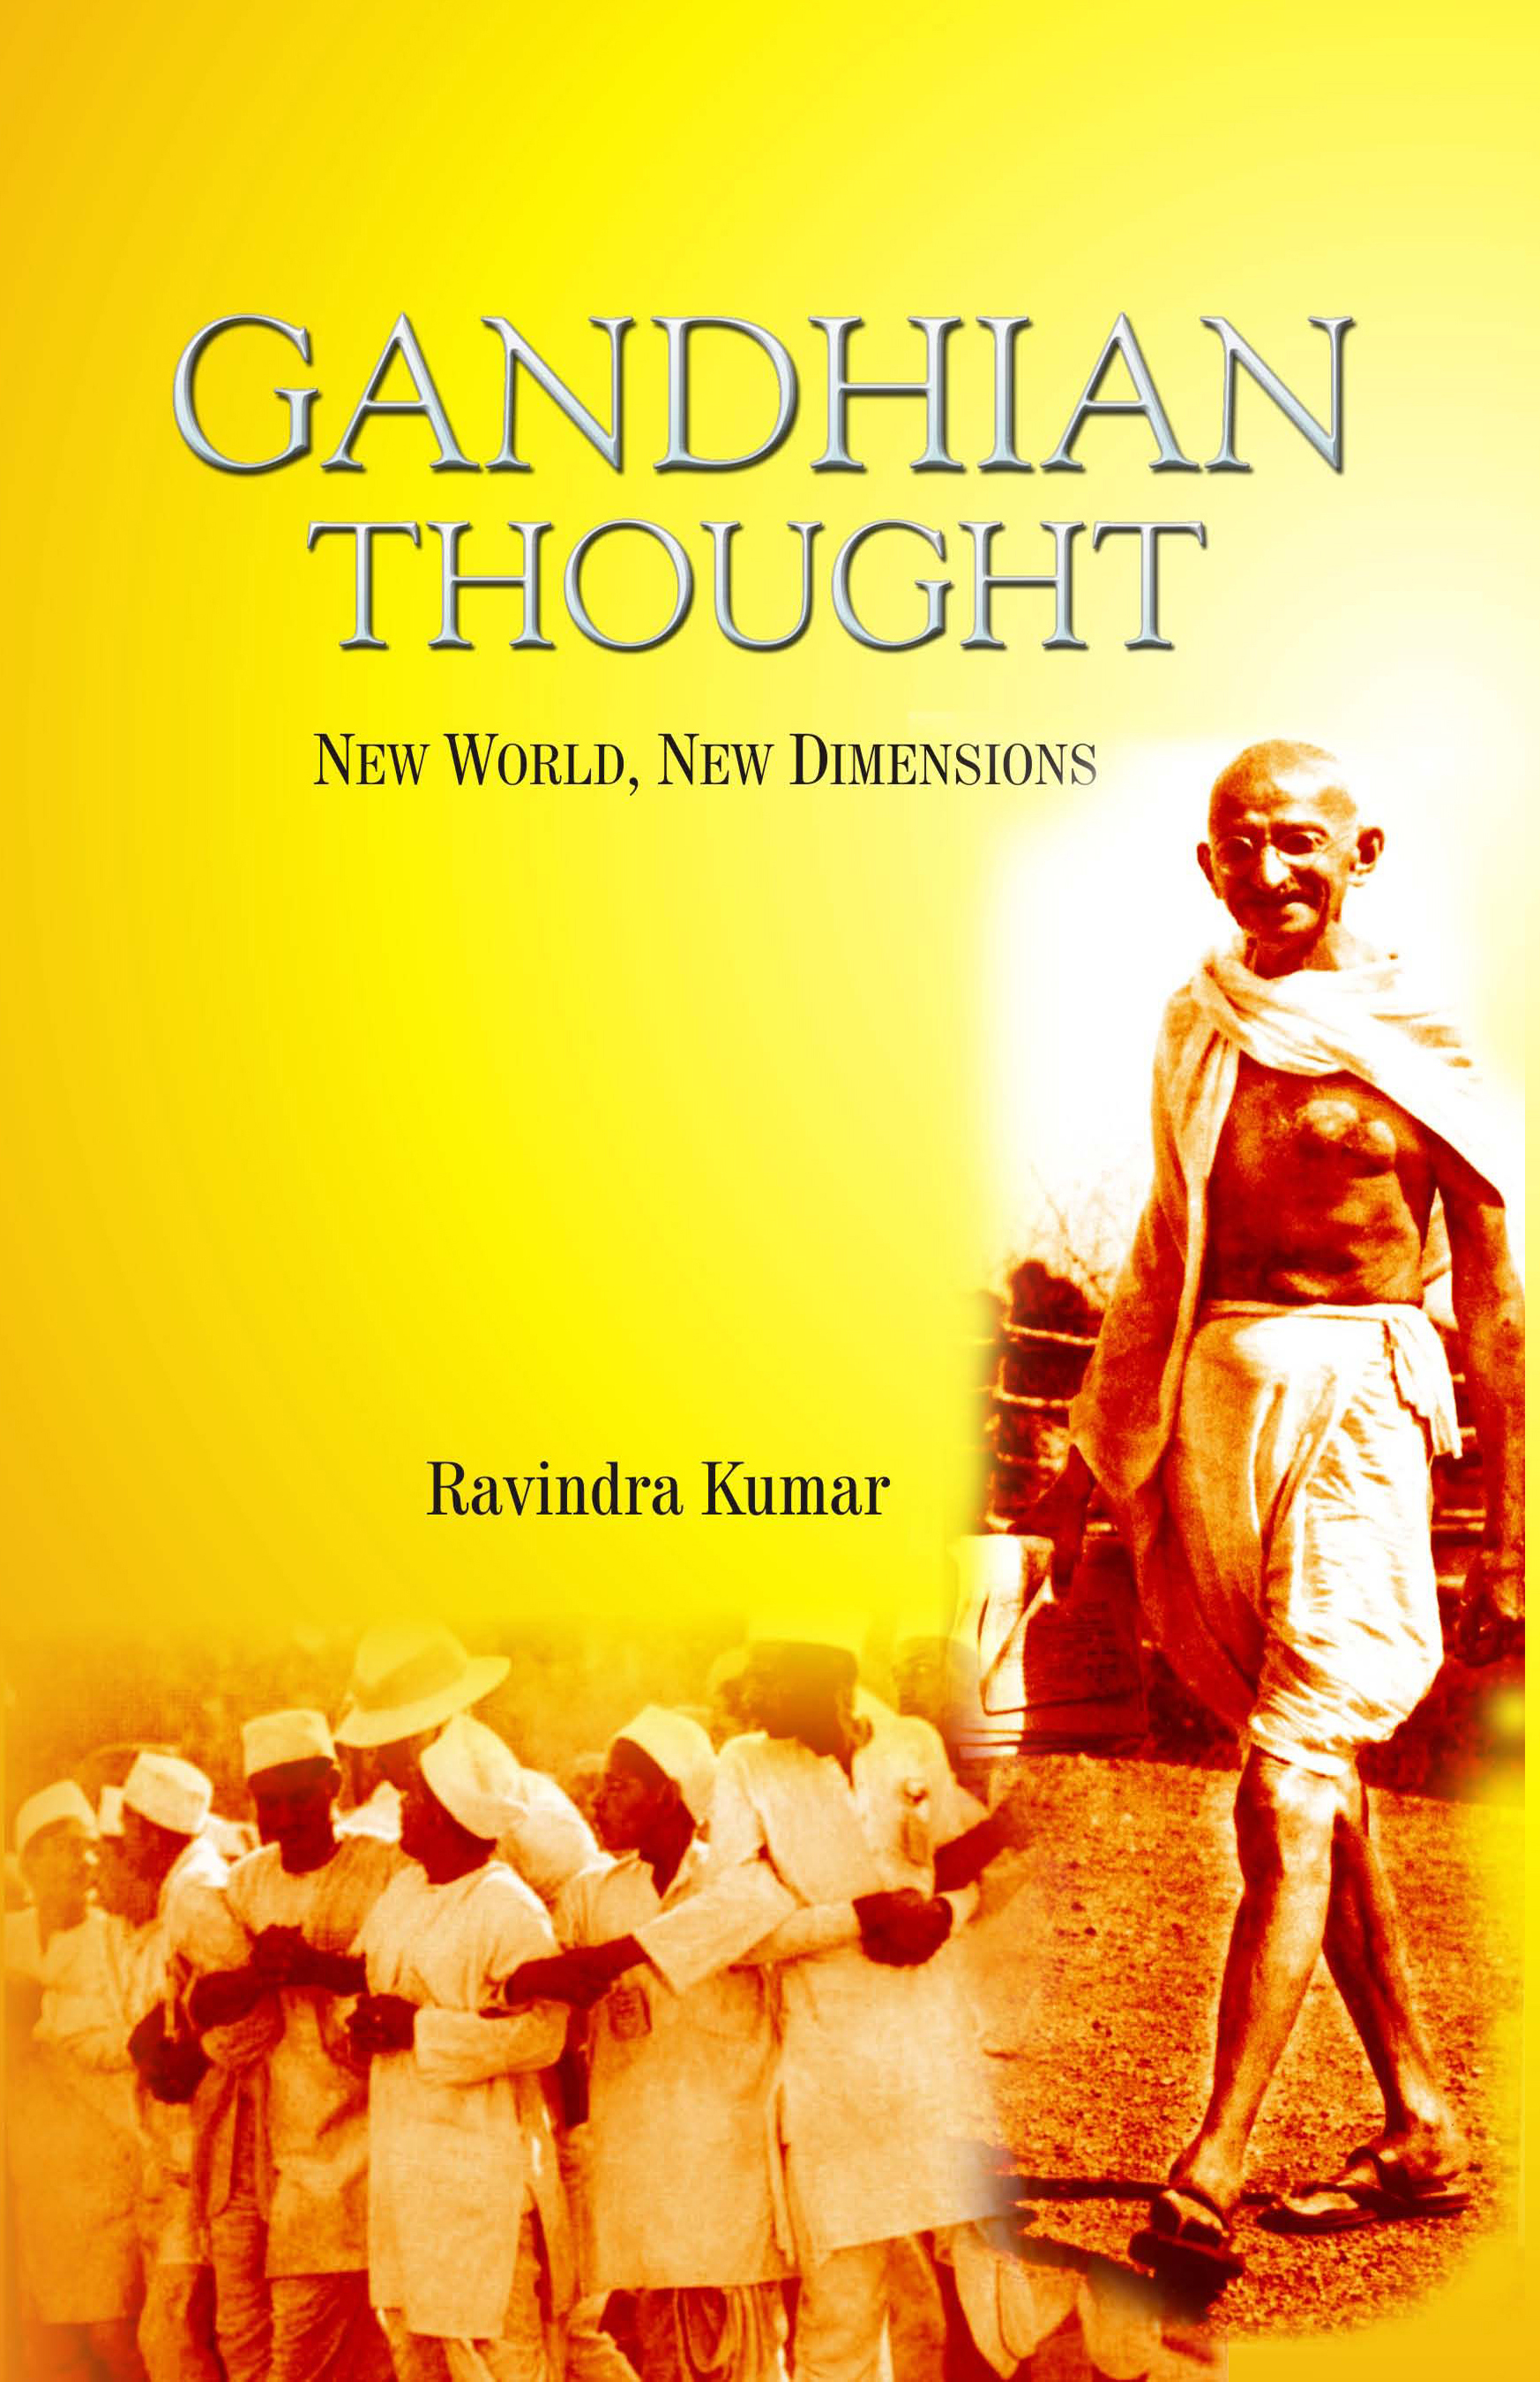 Gandhian thought: New World New Dimensions